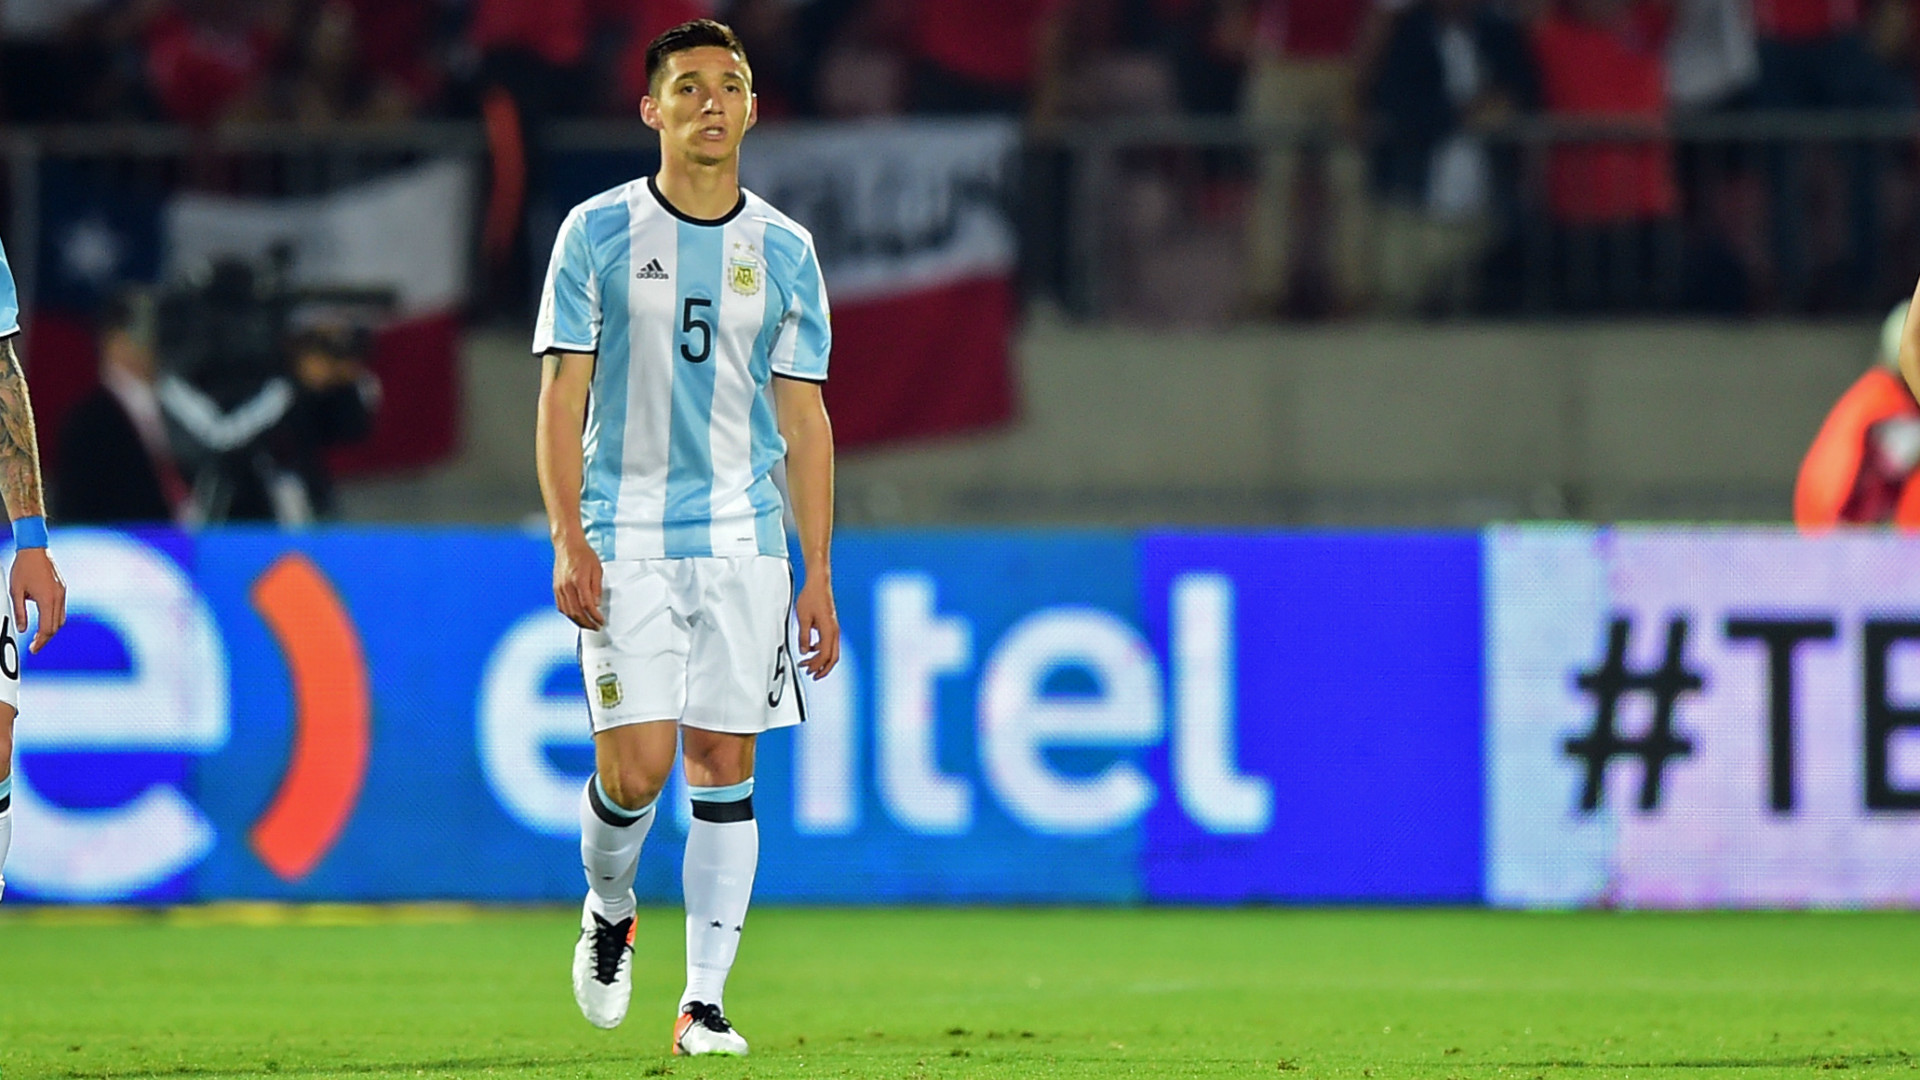 Matias Kranevitter Chile v Argentina Eliminatorias WC Qualifying South America 2018 24032016